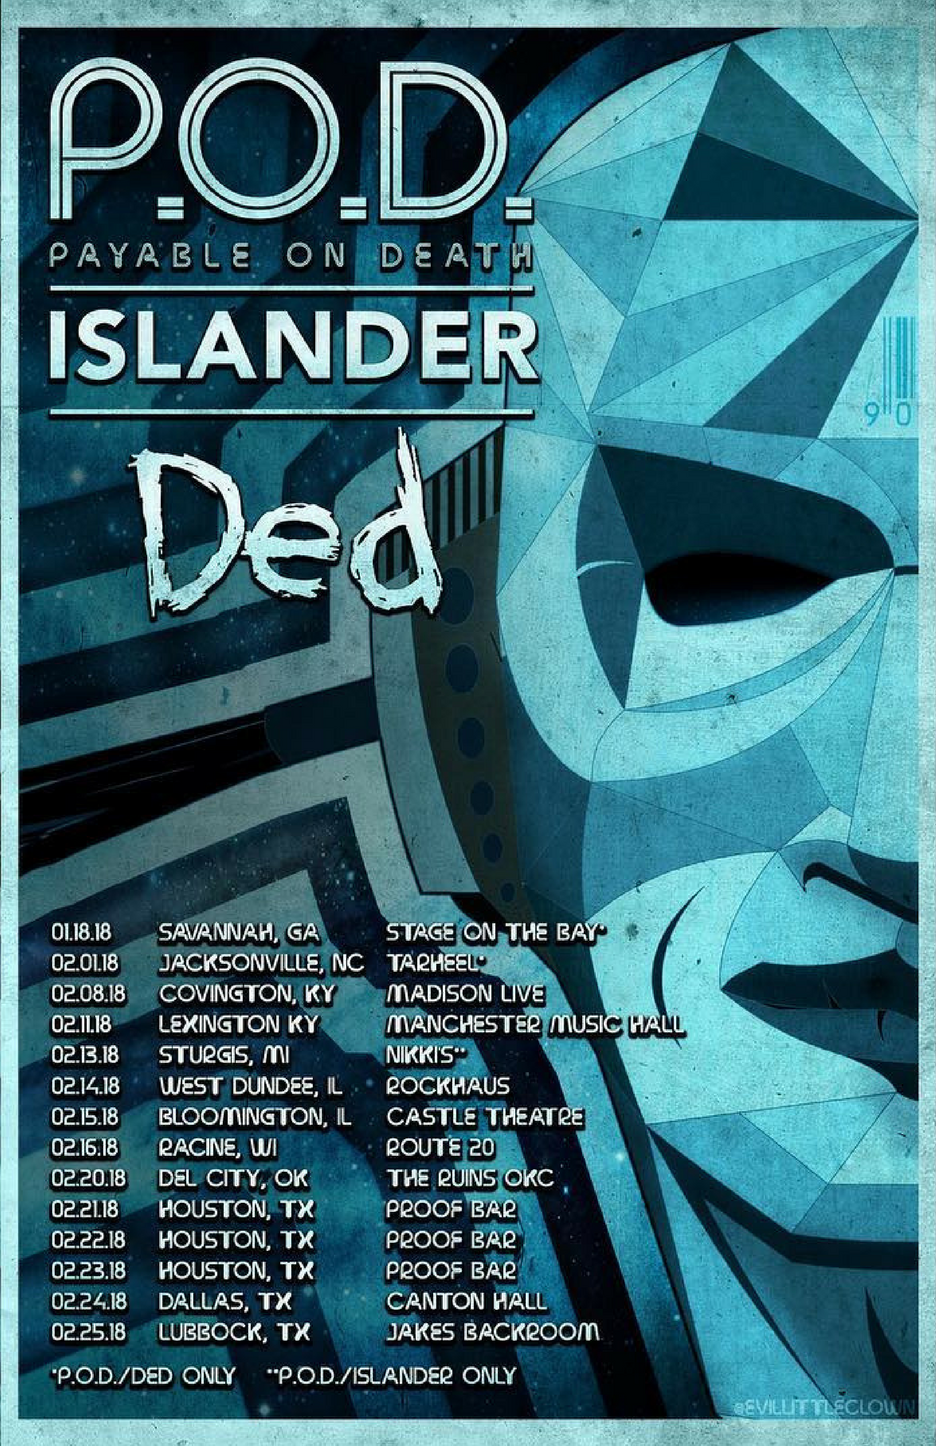 Ded with P.O.D. and ISLANDER